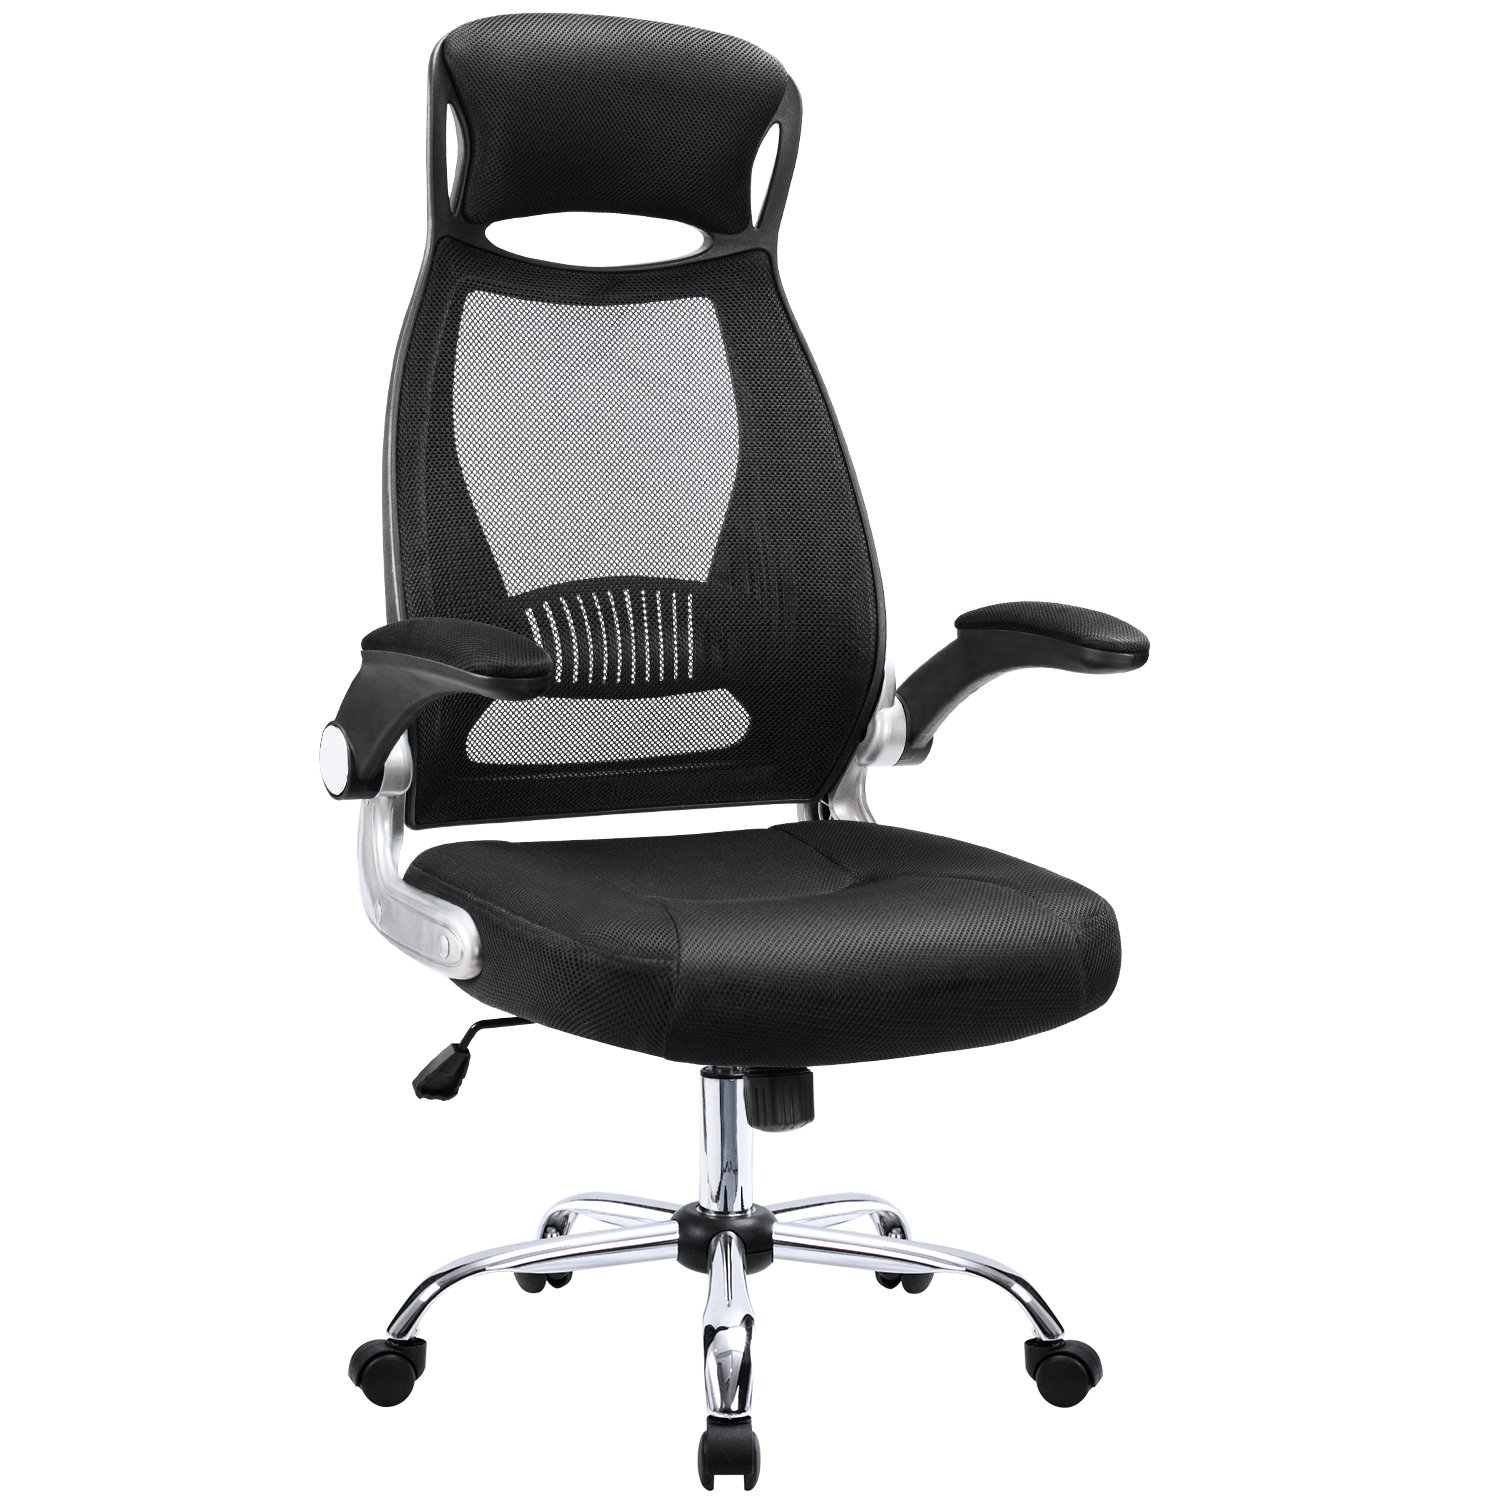 Furmax Mesh Office Chair High Back Desk Chair with Adjustable Armrest,Computer Swivel Task Chair with Ergonomic Headrest(Black)